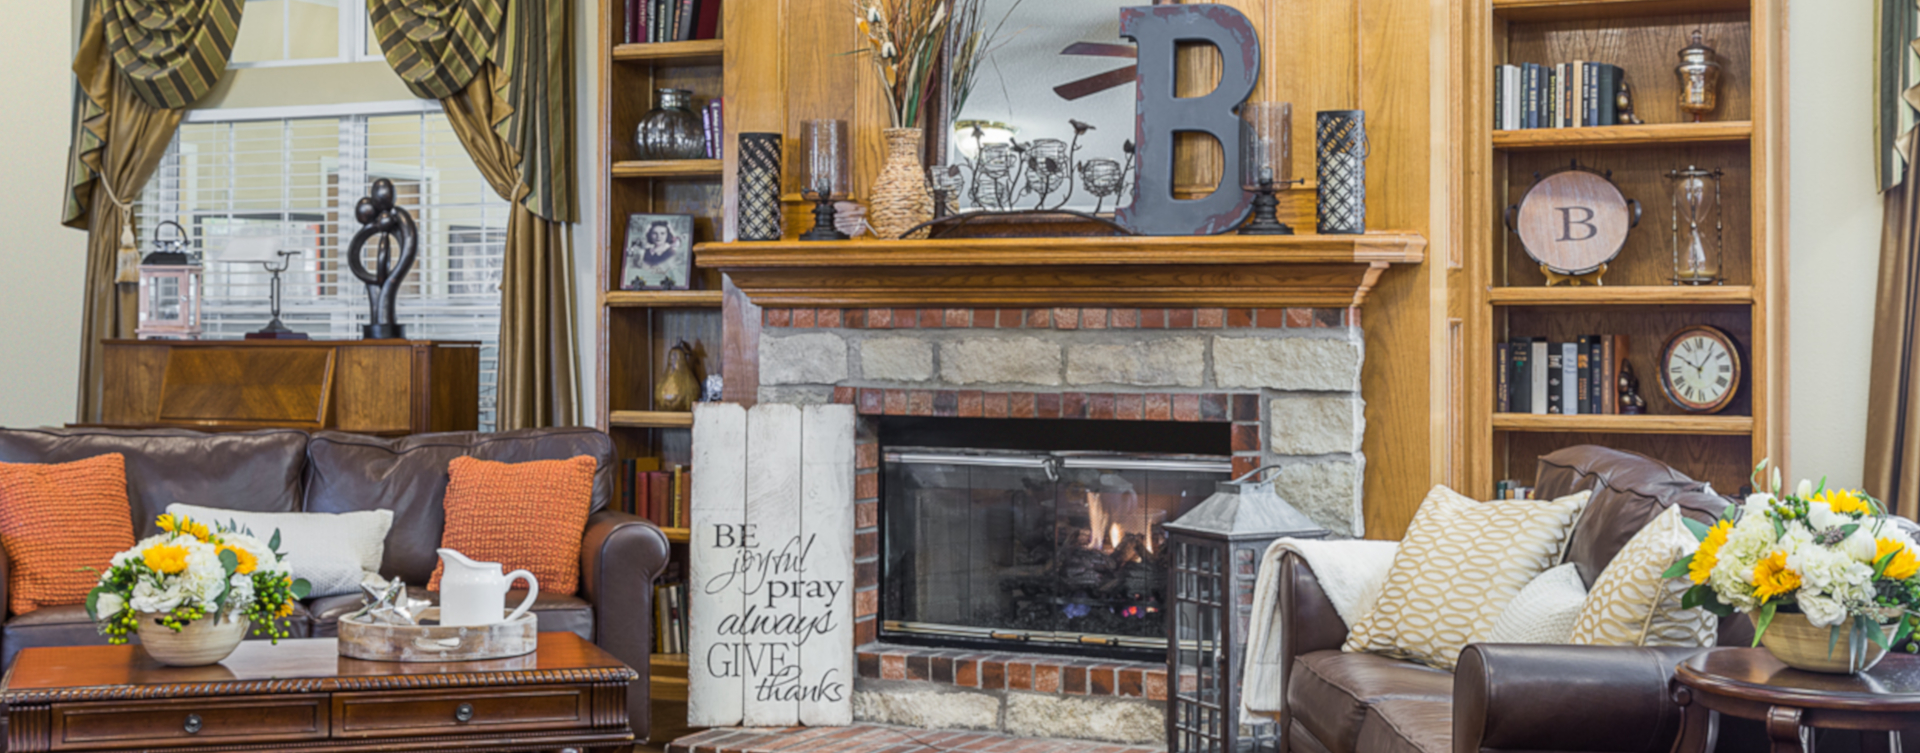 Enjoy a good book in the living room at Bickford of West Des Moines